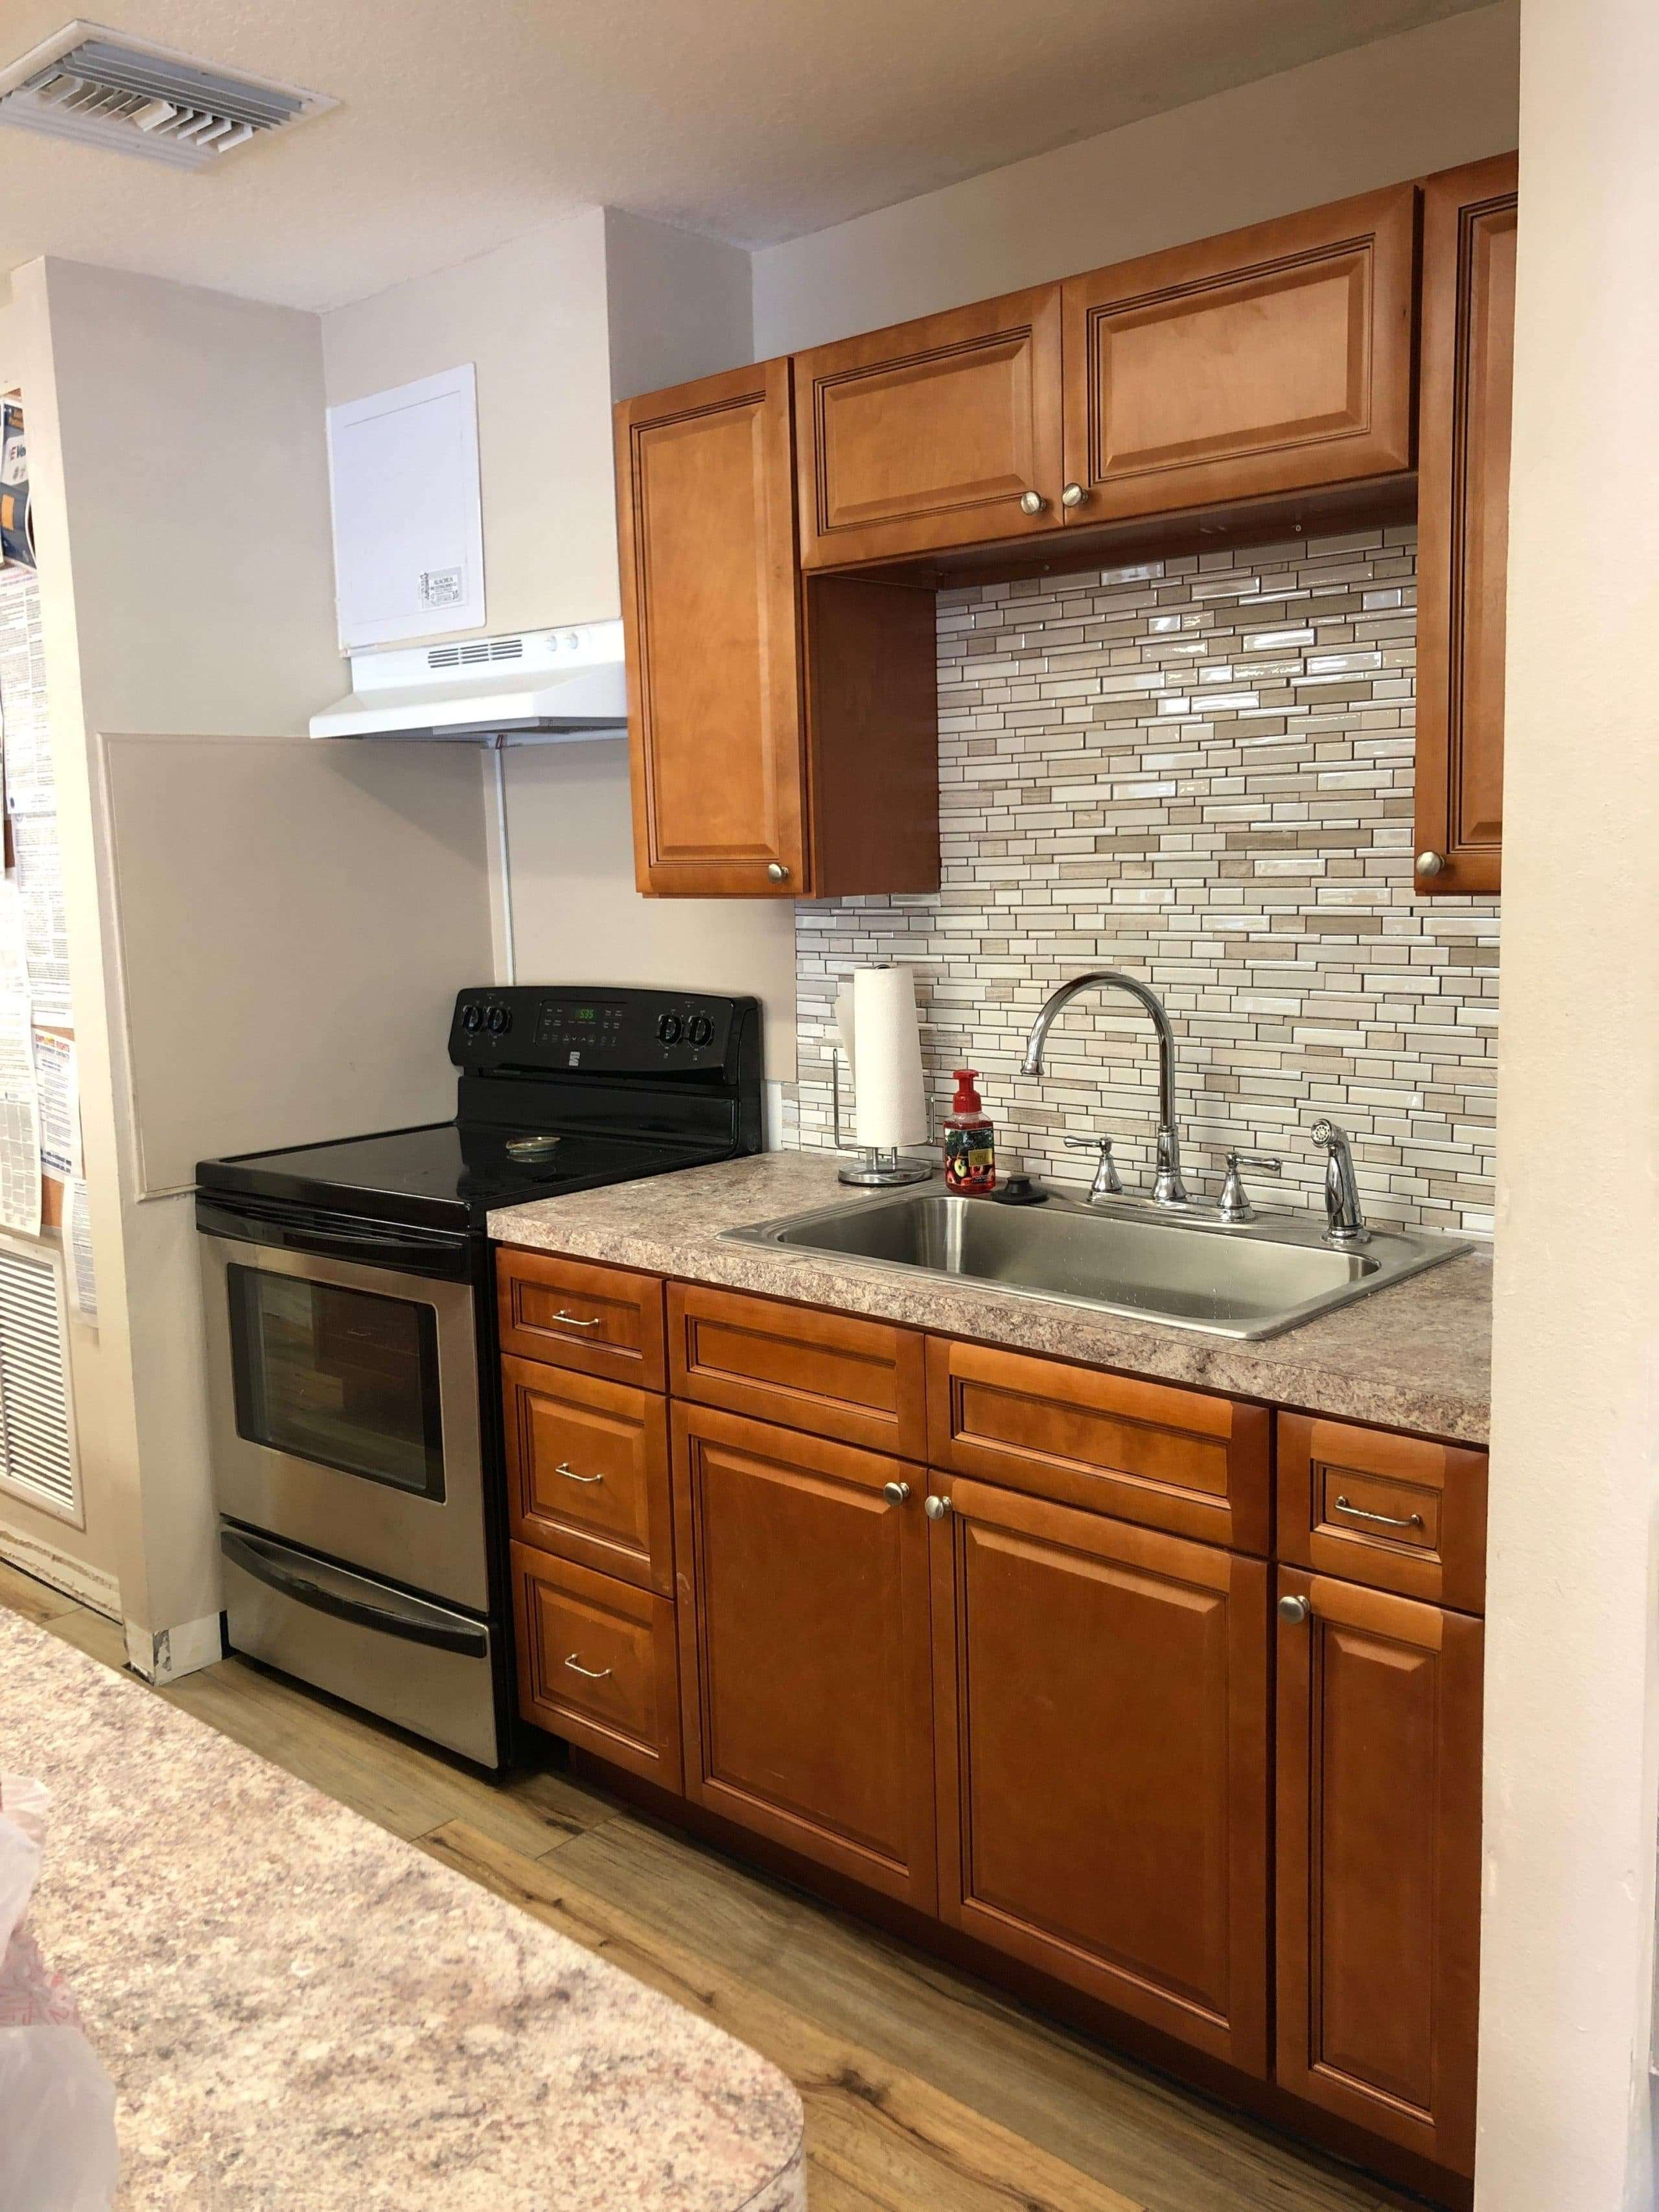 The kitchen in the Family Resource Center, including an oven, a large sink, and overhead cabinets